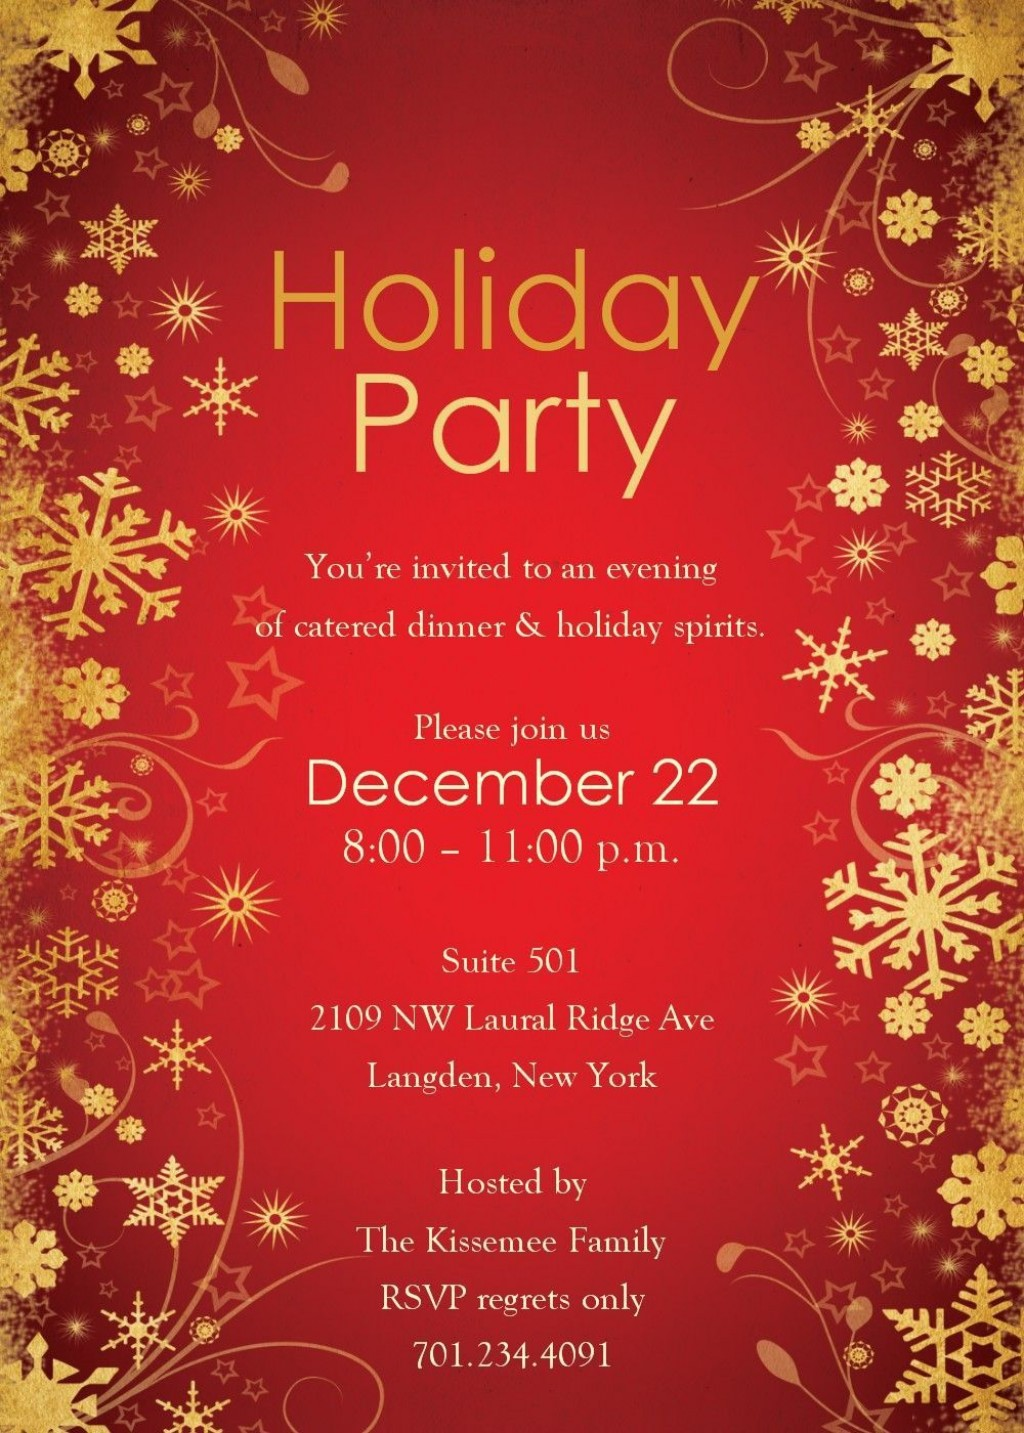 006 Striking Free Holiday Party Invitation Template Design  Templates Printable Downloadable Christma OnlineLarge